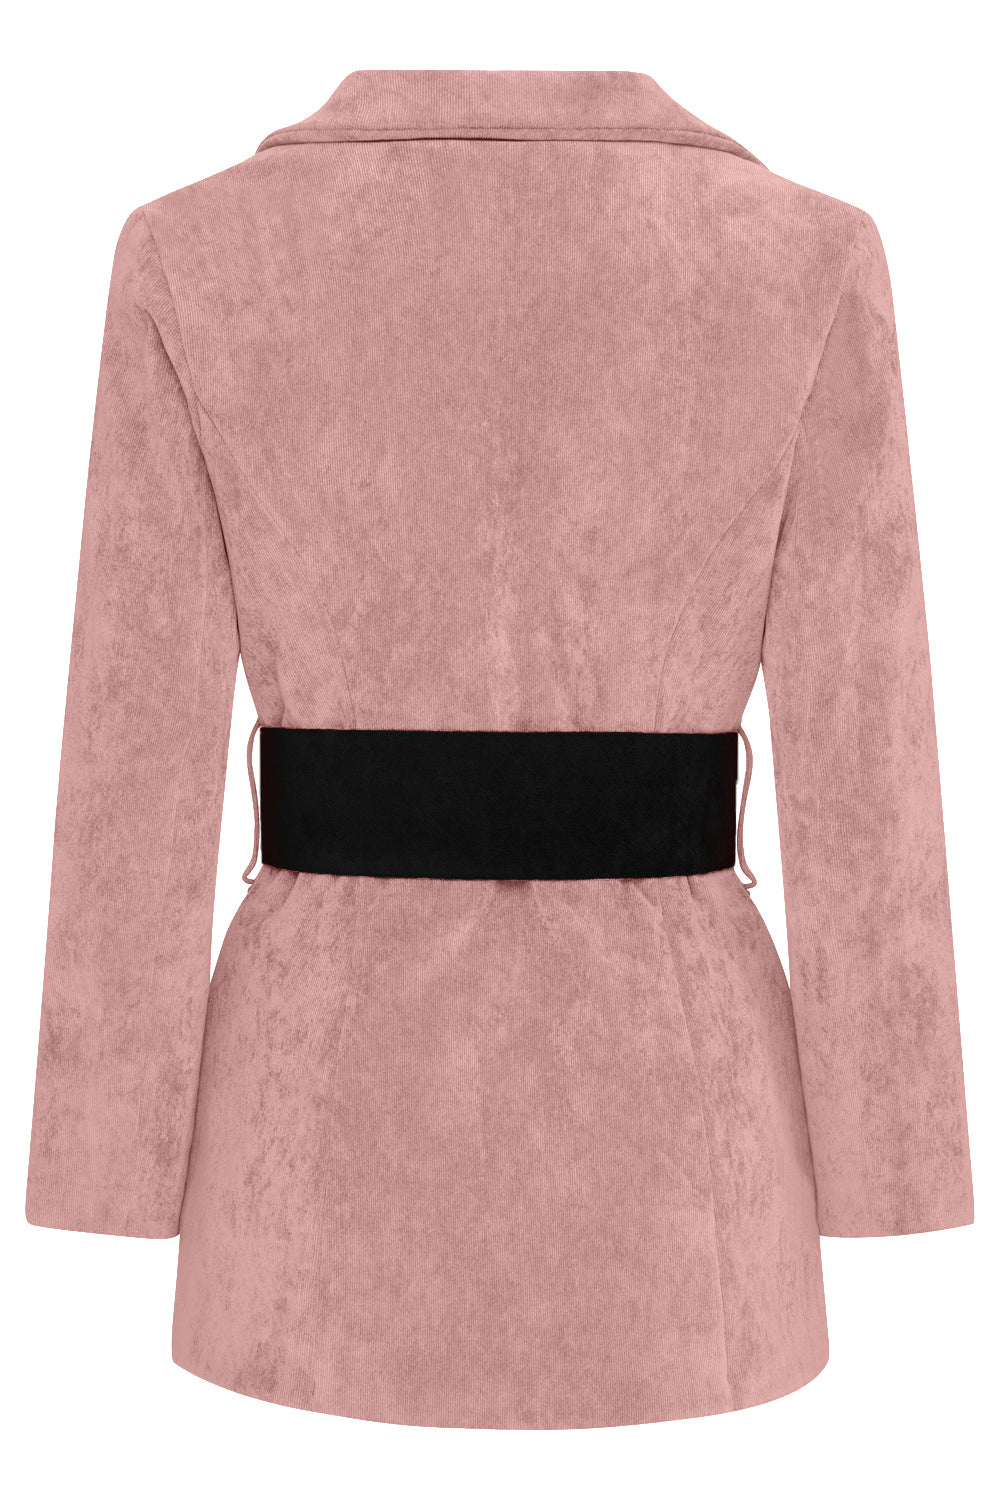 HYDRA BLAZER - DUSKY PINK WITH BLACK BELT